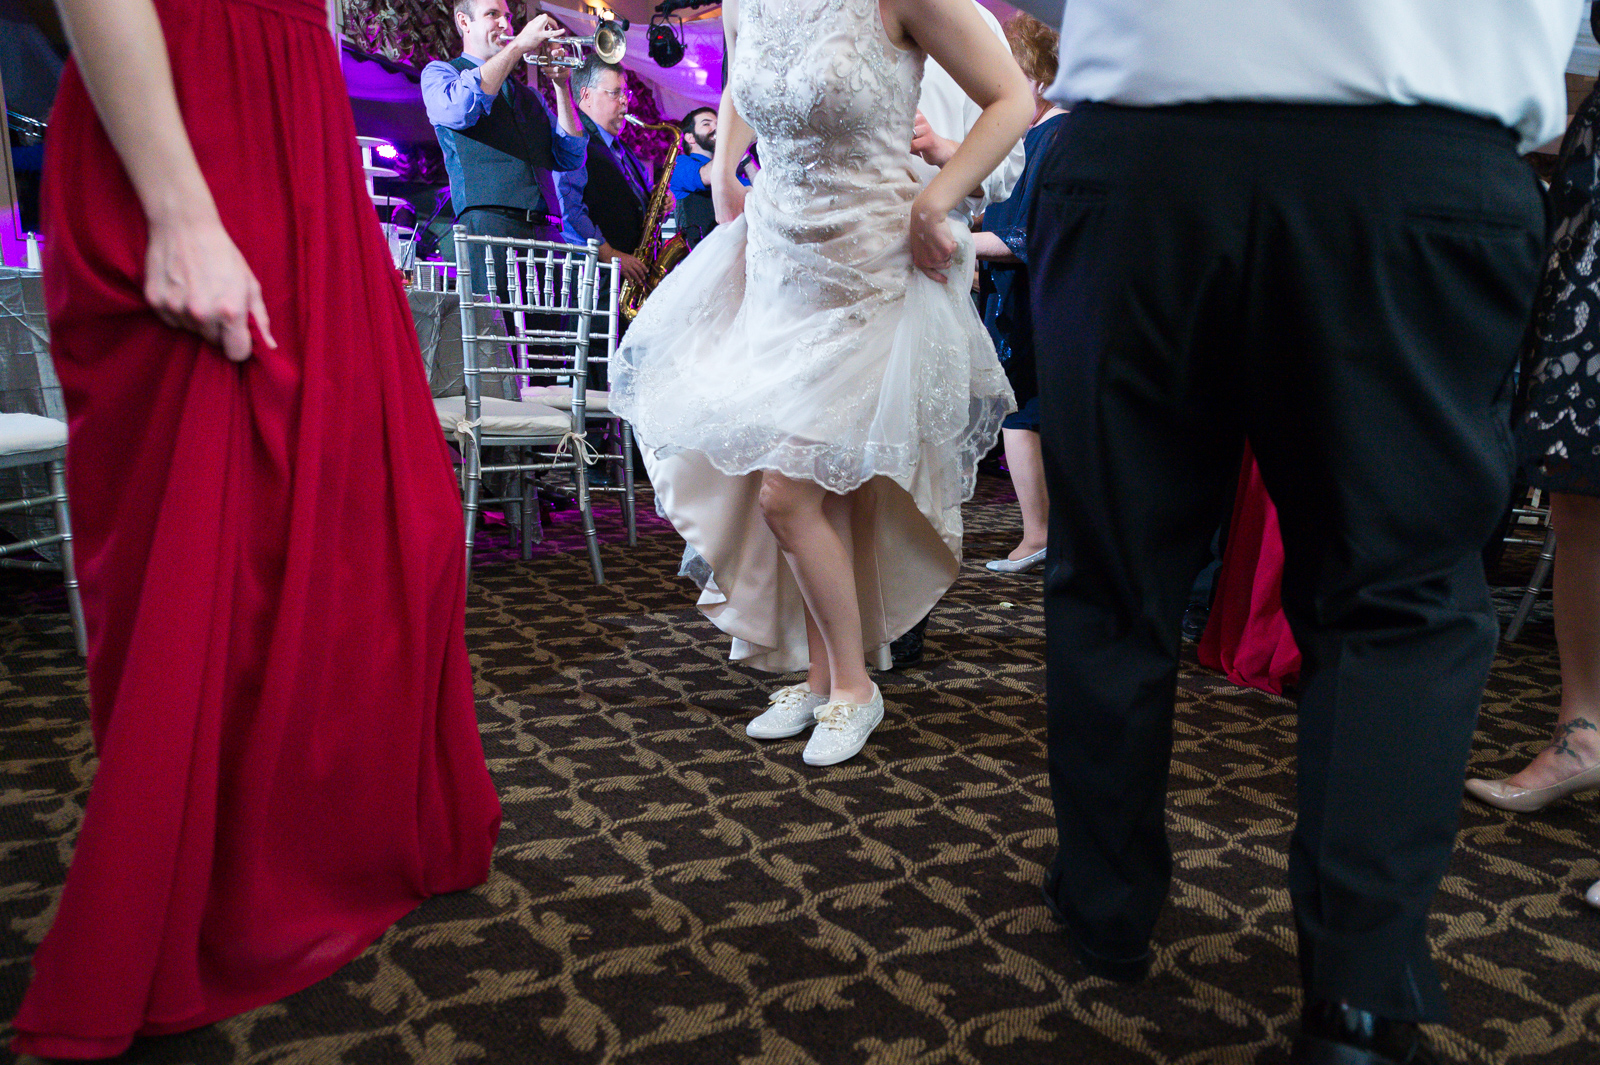 Scranton-clarks-summit-wedding-glen-oaks-contry-club-wedding-photographer-steven-serge-112.jpg